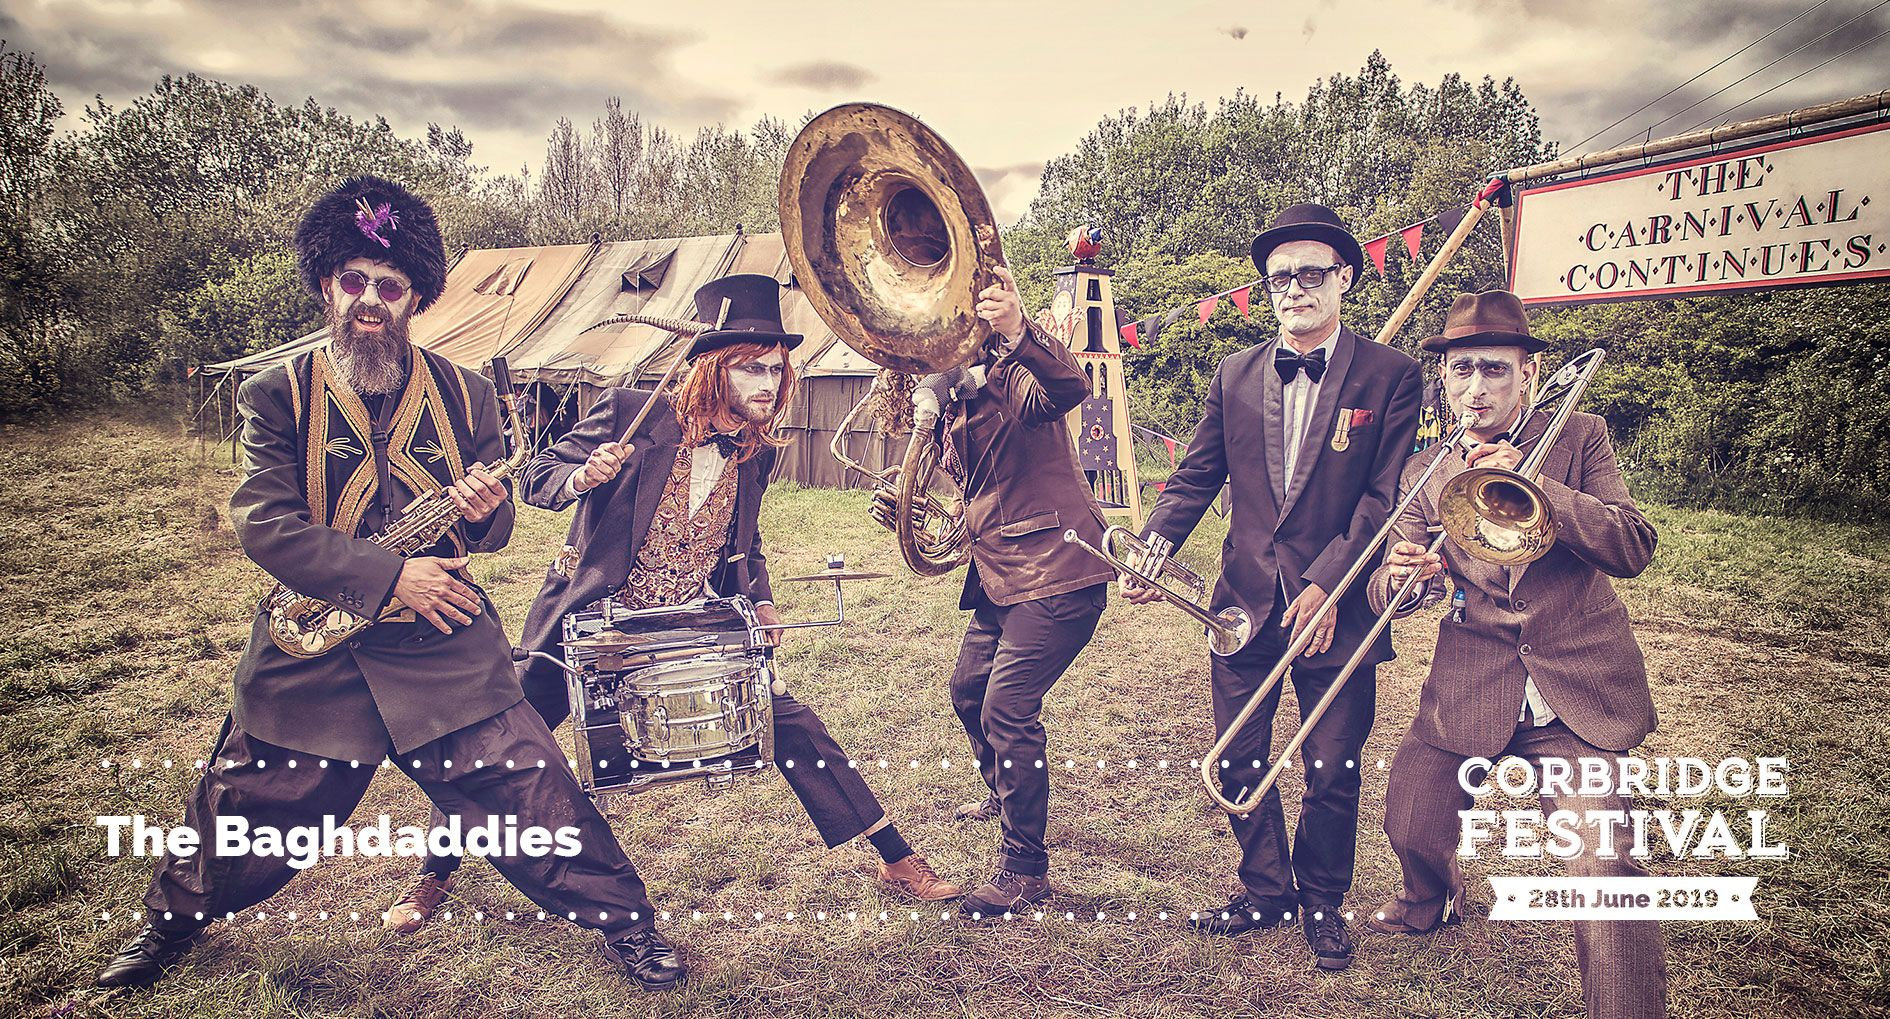 The Baghdaddies play the main stage at Corbridge Festival 2019 on Friday 28th June